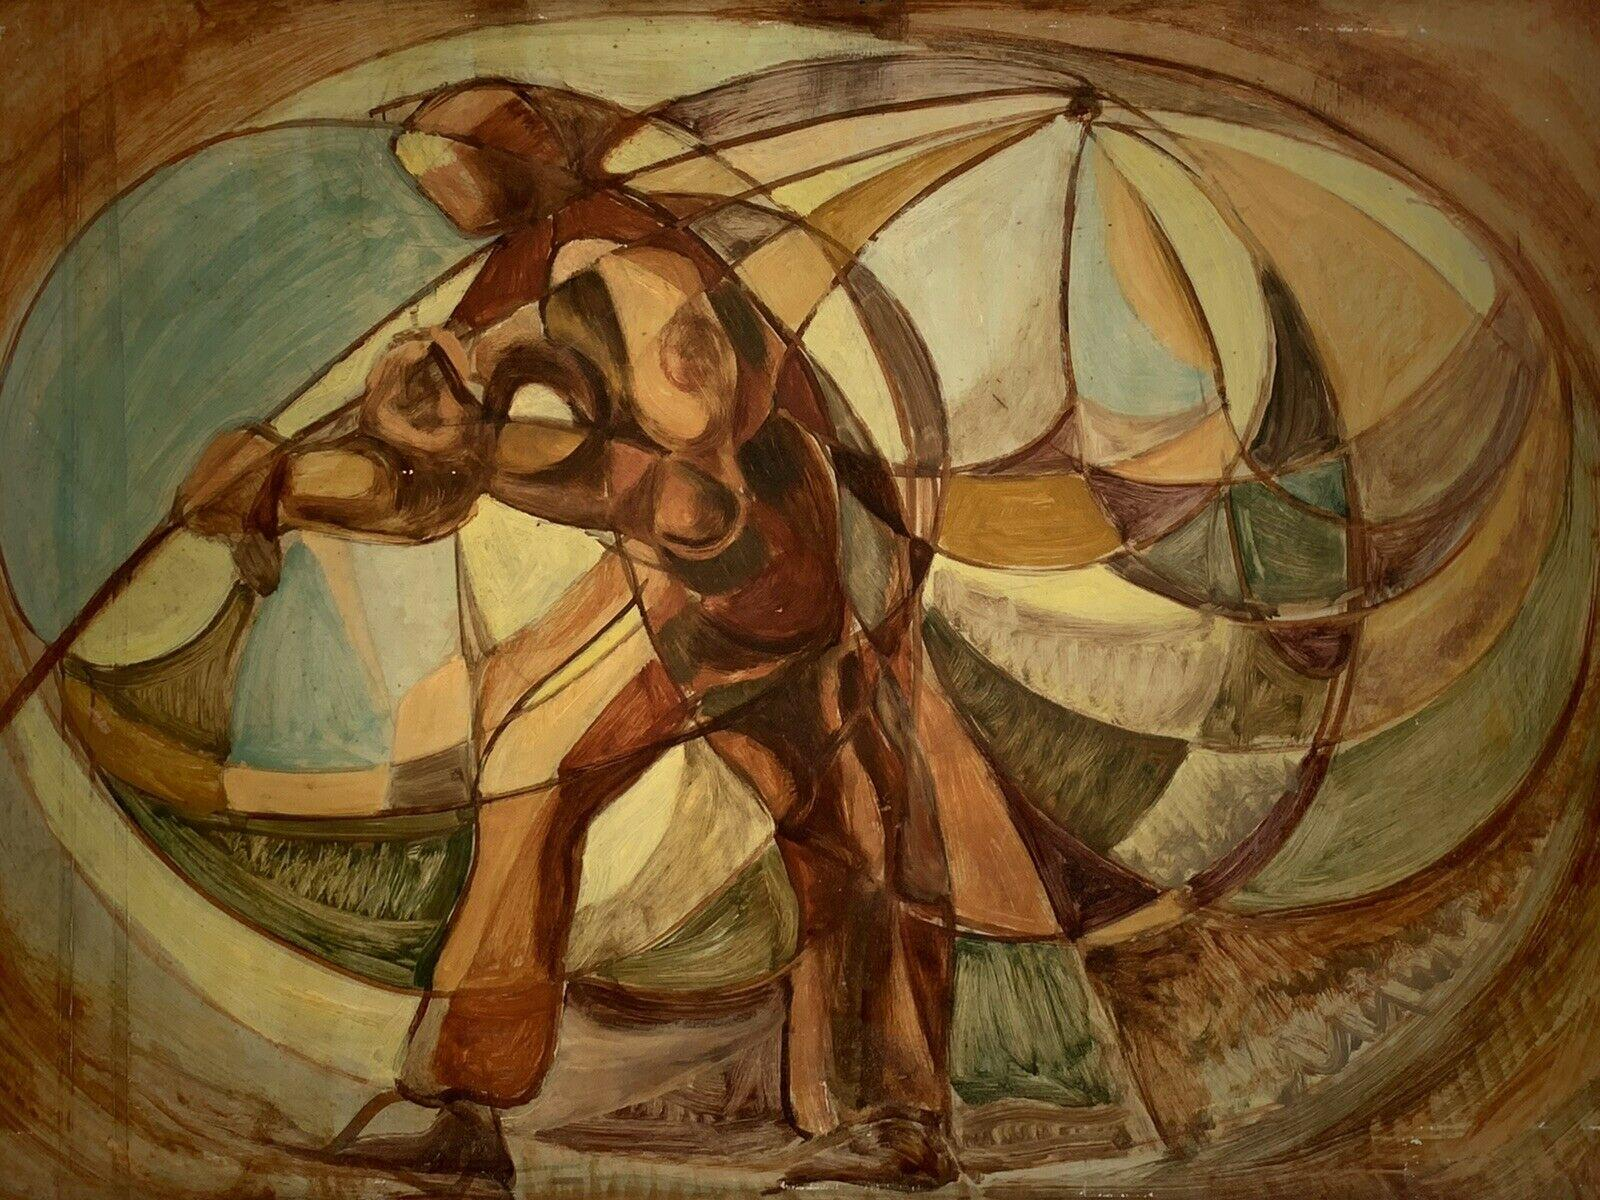 1960's HUGE FRENCH CUBIST ABSTRACT OIL PAINTING - FIGURATIVE COMPOSITION